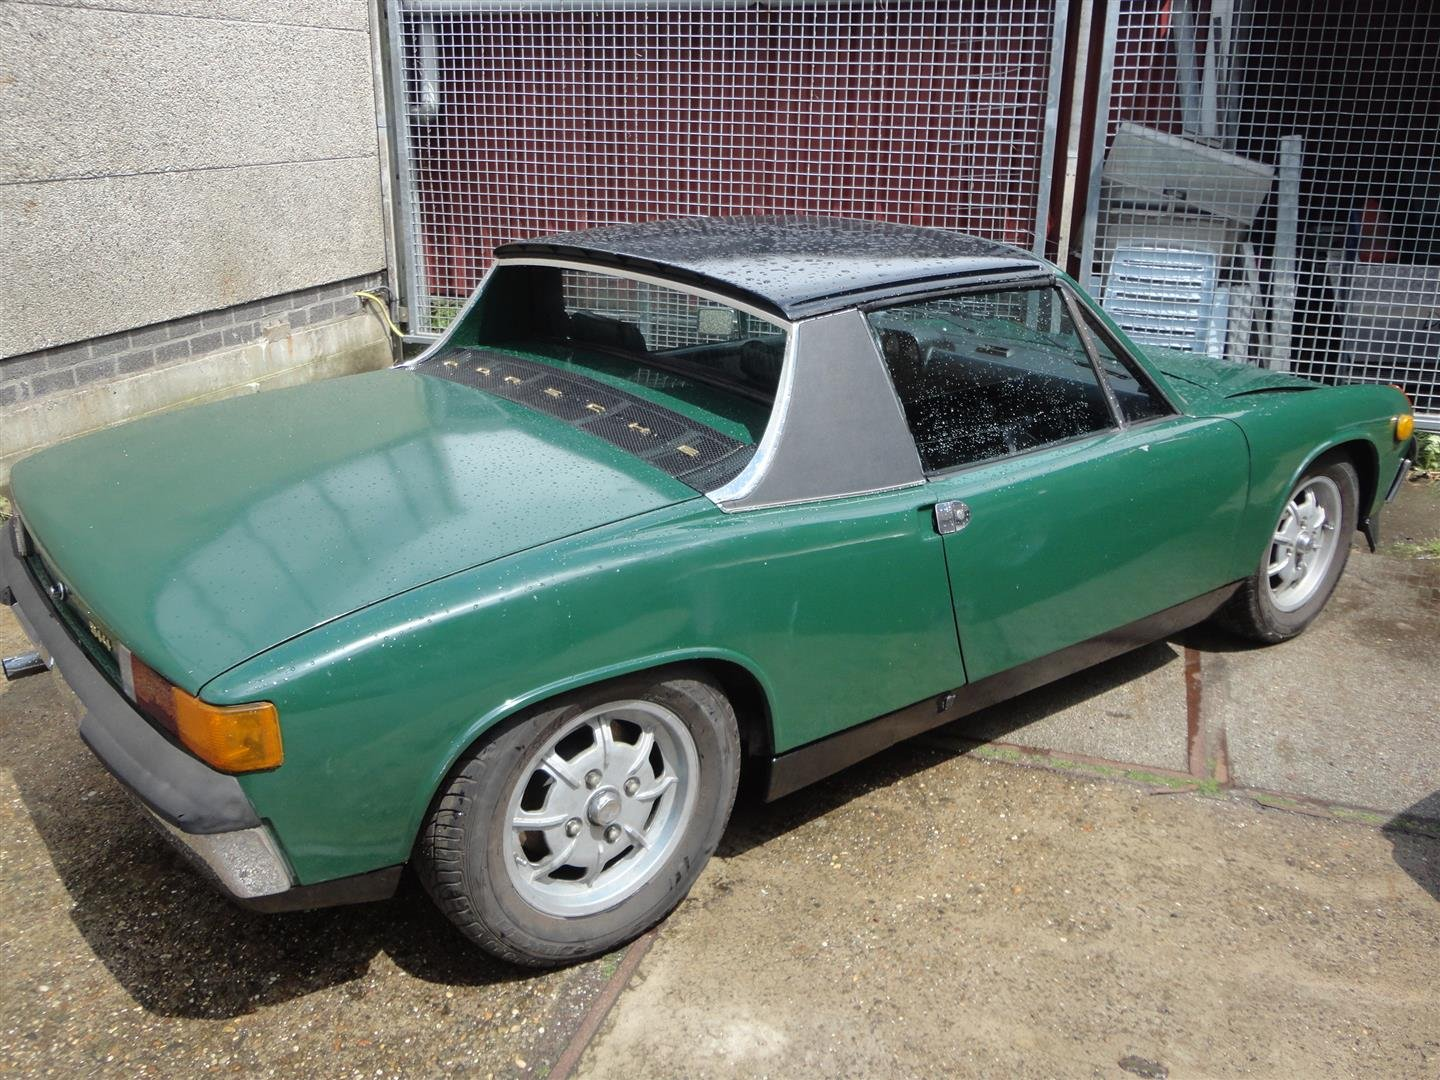 1970 Porsche 914 '70 green For Sale (picture 2 of 6)